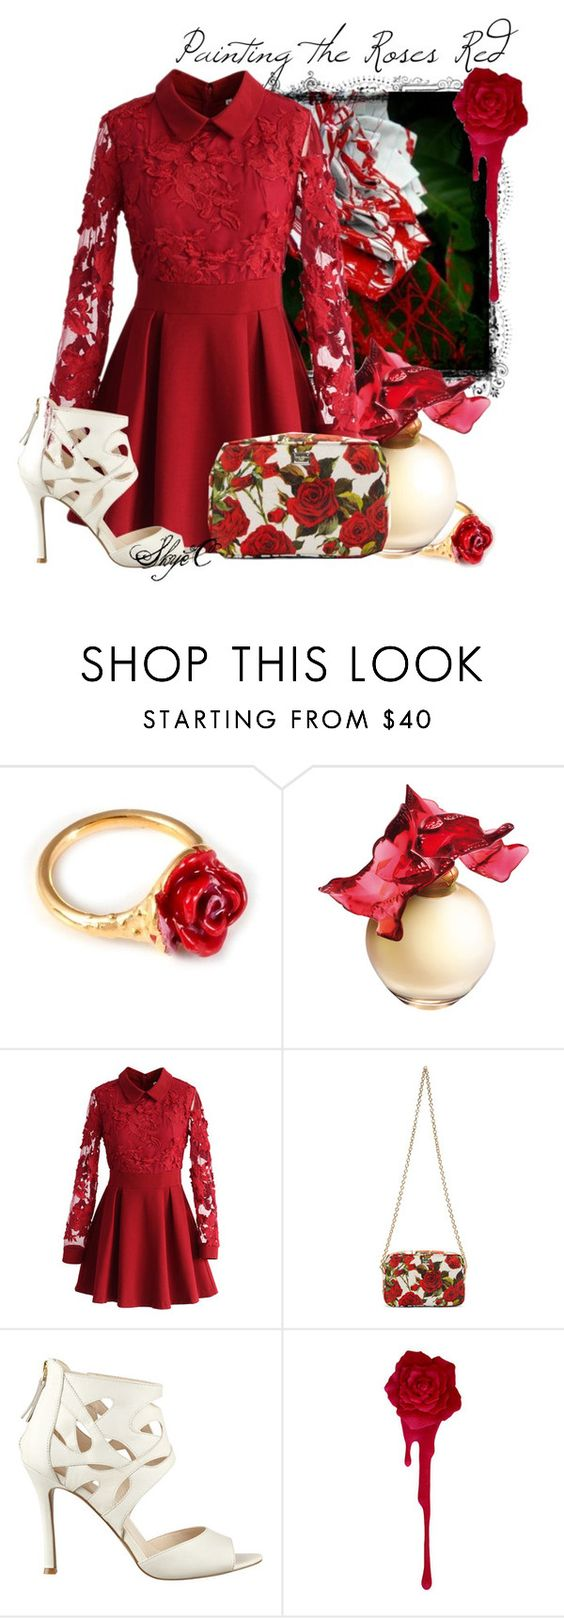 """""""Painting the Roses Red - Disney's Alice in Wonderland"""" by rubytyra ❤ liked on Polyvore featuring LeiVanKash, Lalique, Chicwish, Dolce&Gabbana, Nine West, disney, aliceinwonderland and disneybound"""